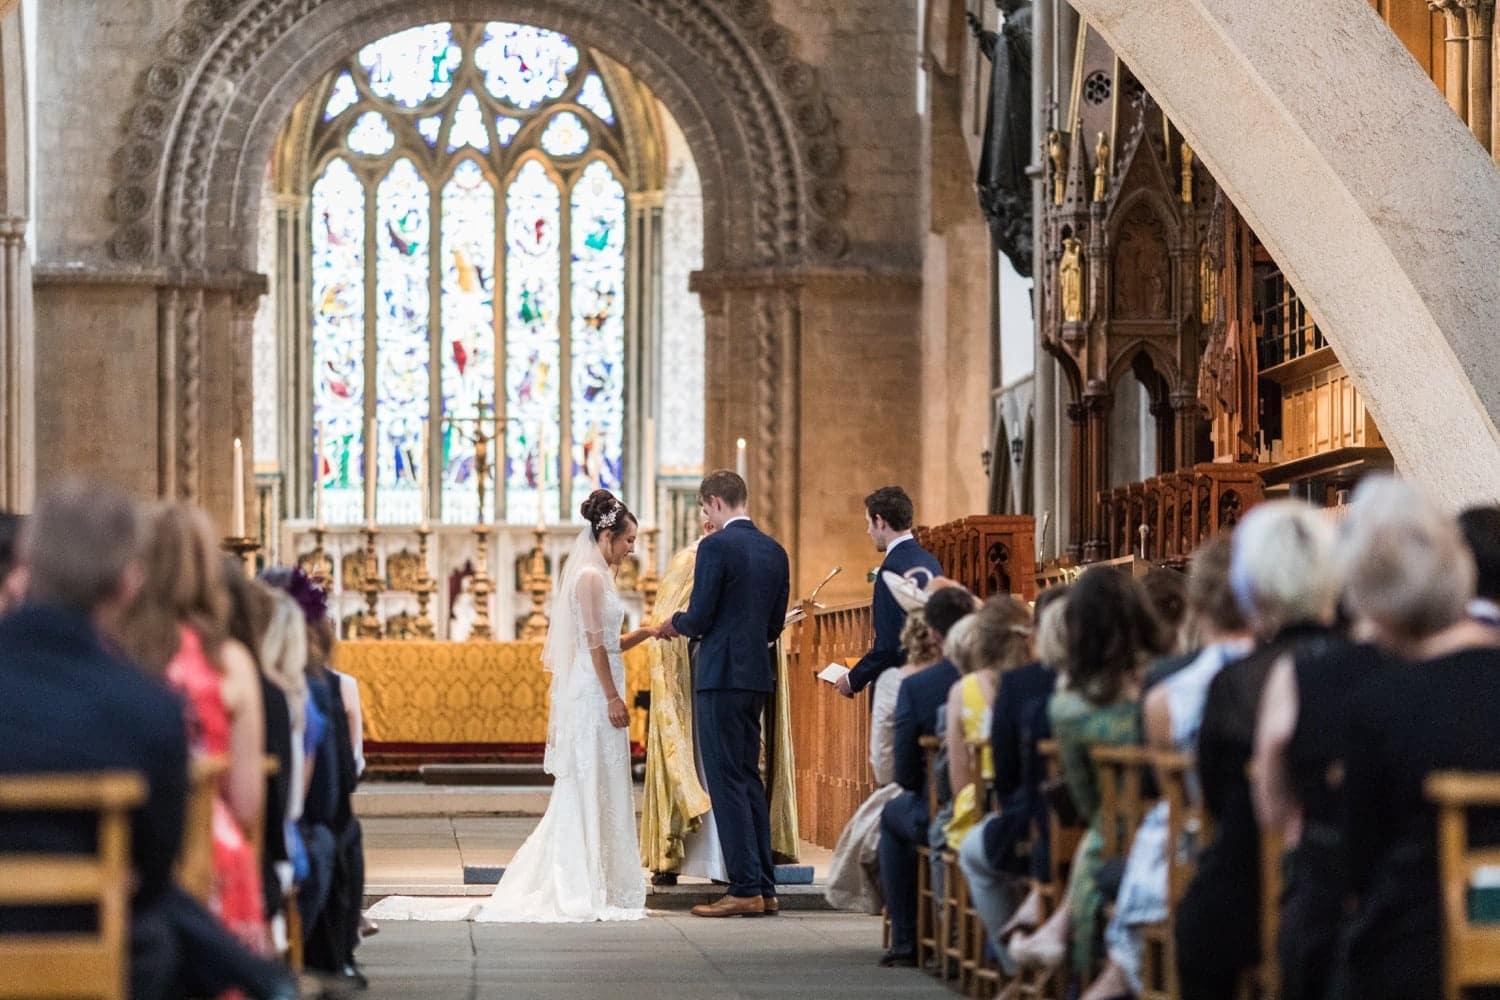 Llandaff Cathedral wedding